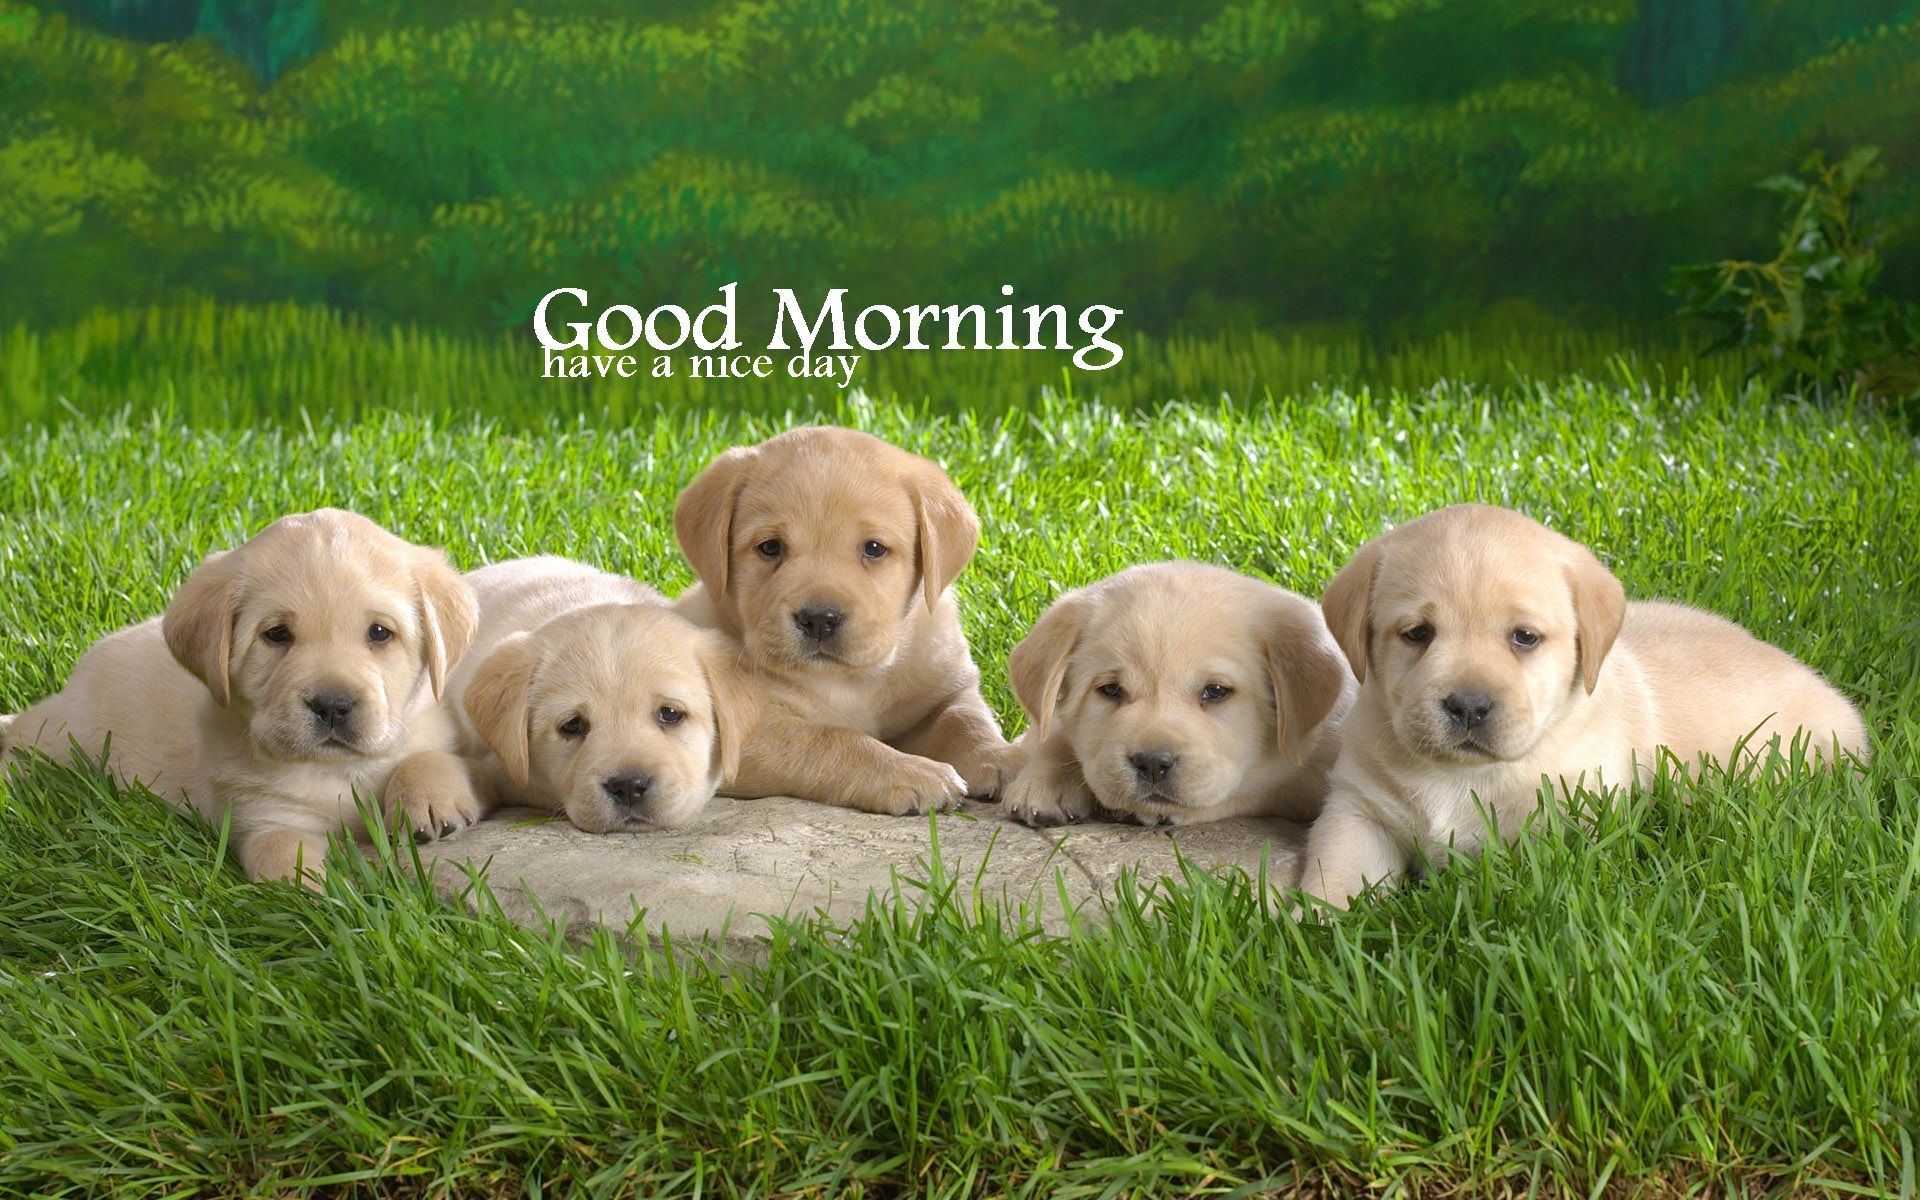 Good Morning Cute Dog Puppy Images Good Morning Cute Cat Images